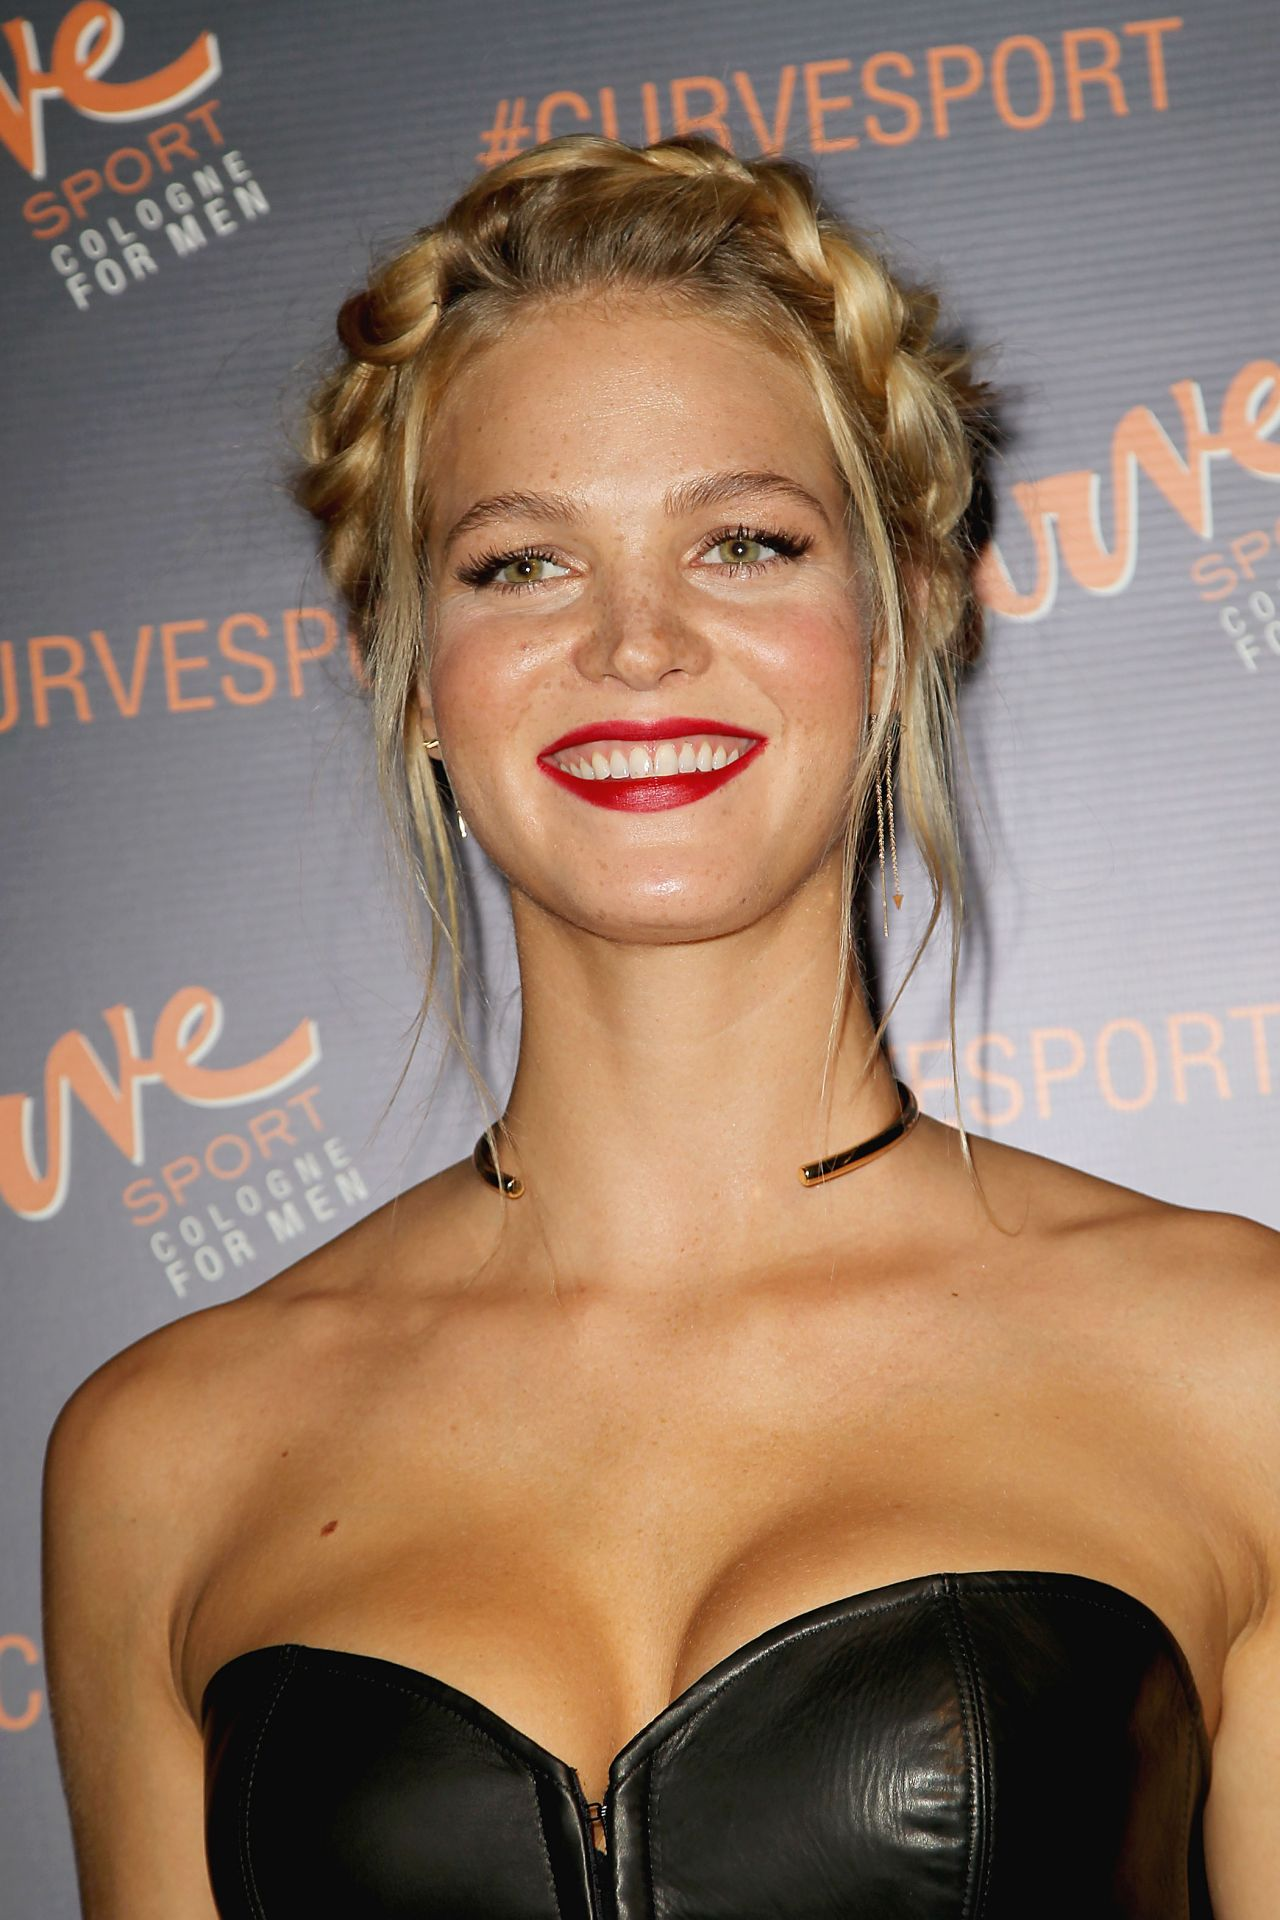 Erin Heatherton Curve Sport Launch Party In New York City